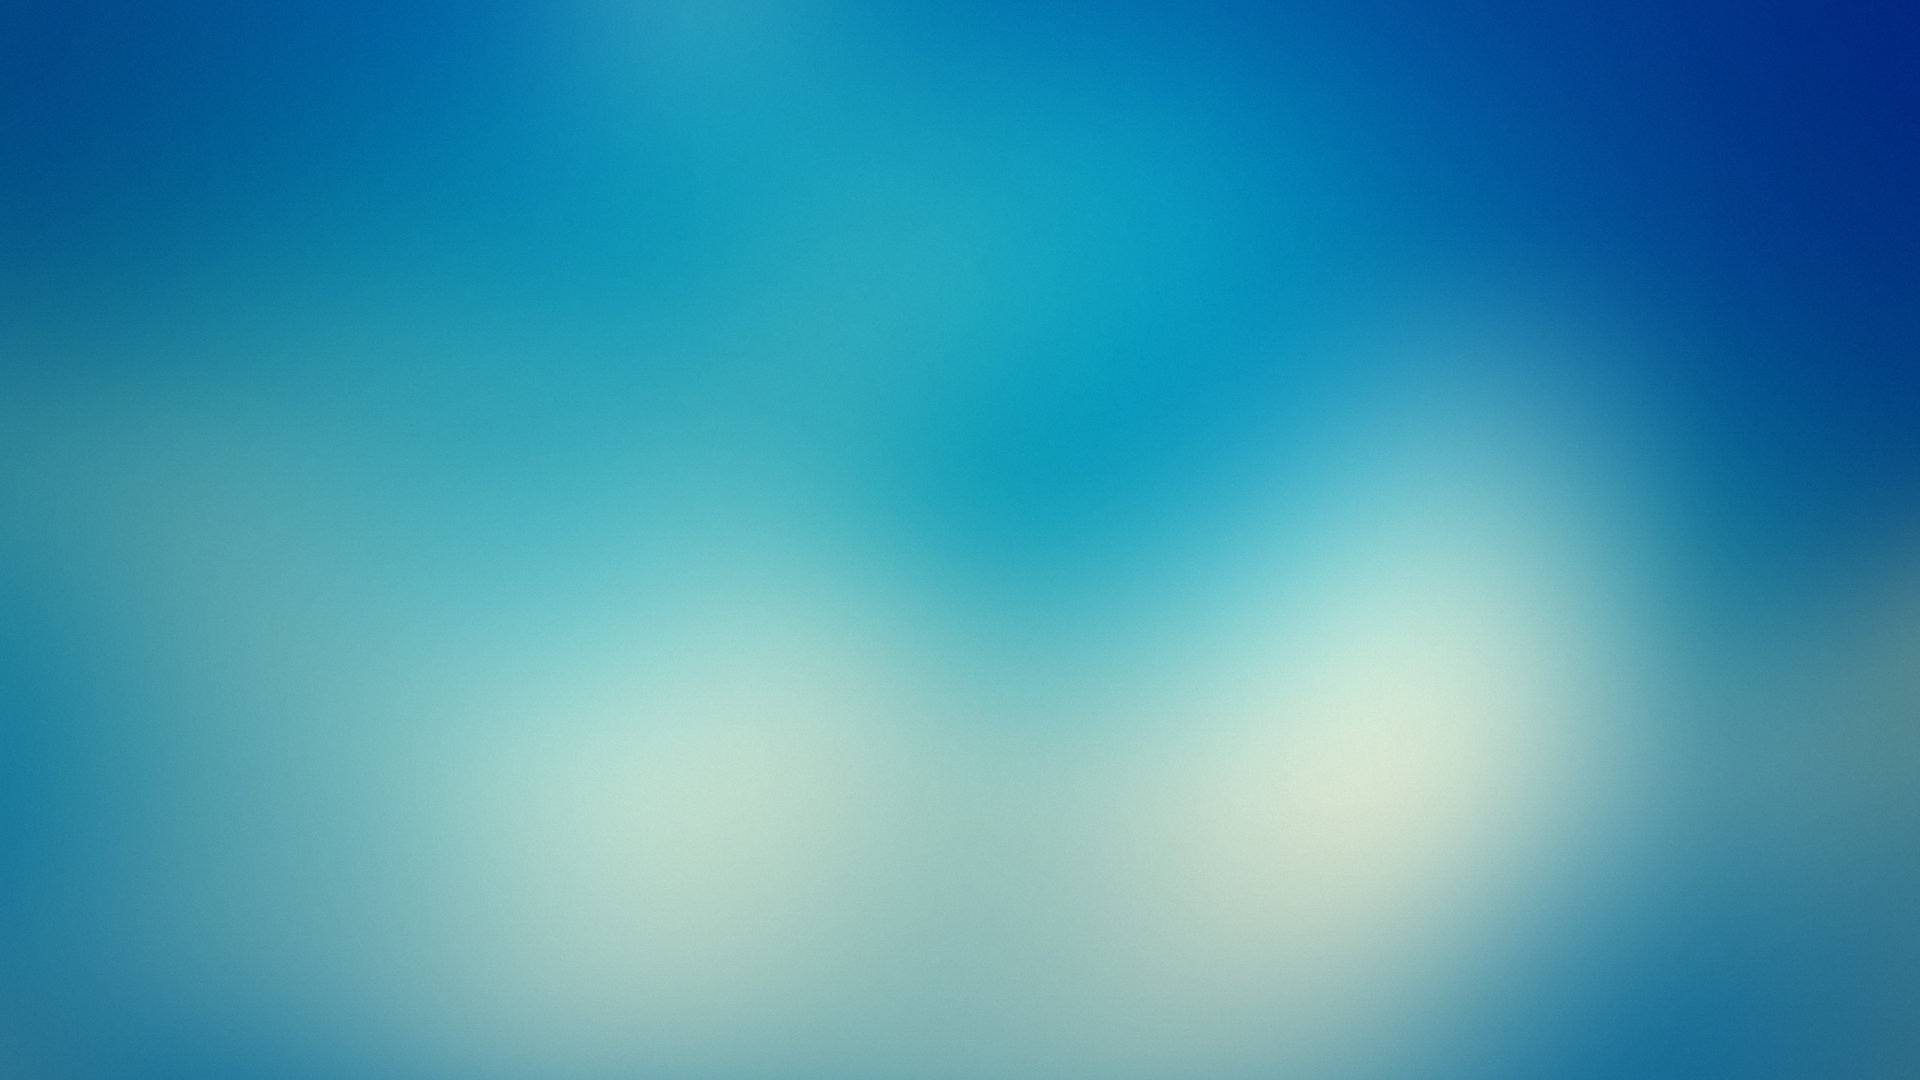 Windows 8 Misty wallpaper